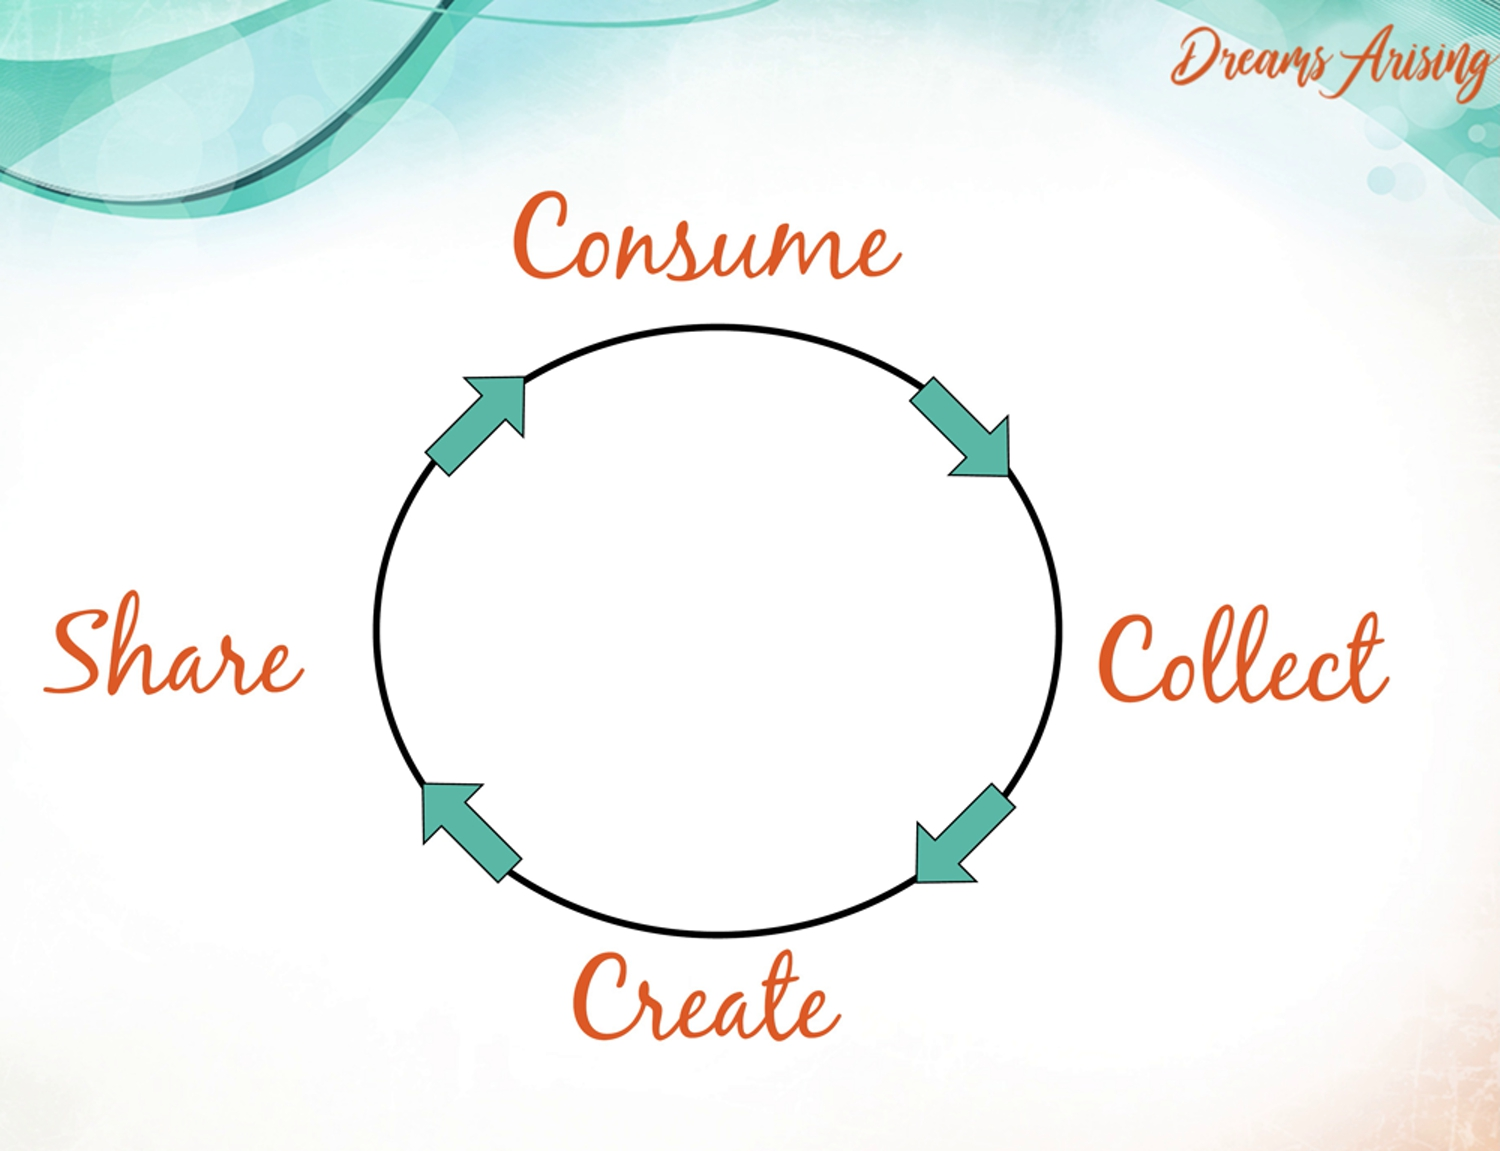 Cycle of Creativity - Consume, Collect, Create, Share